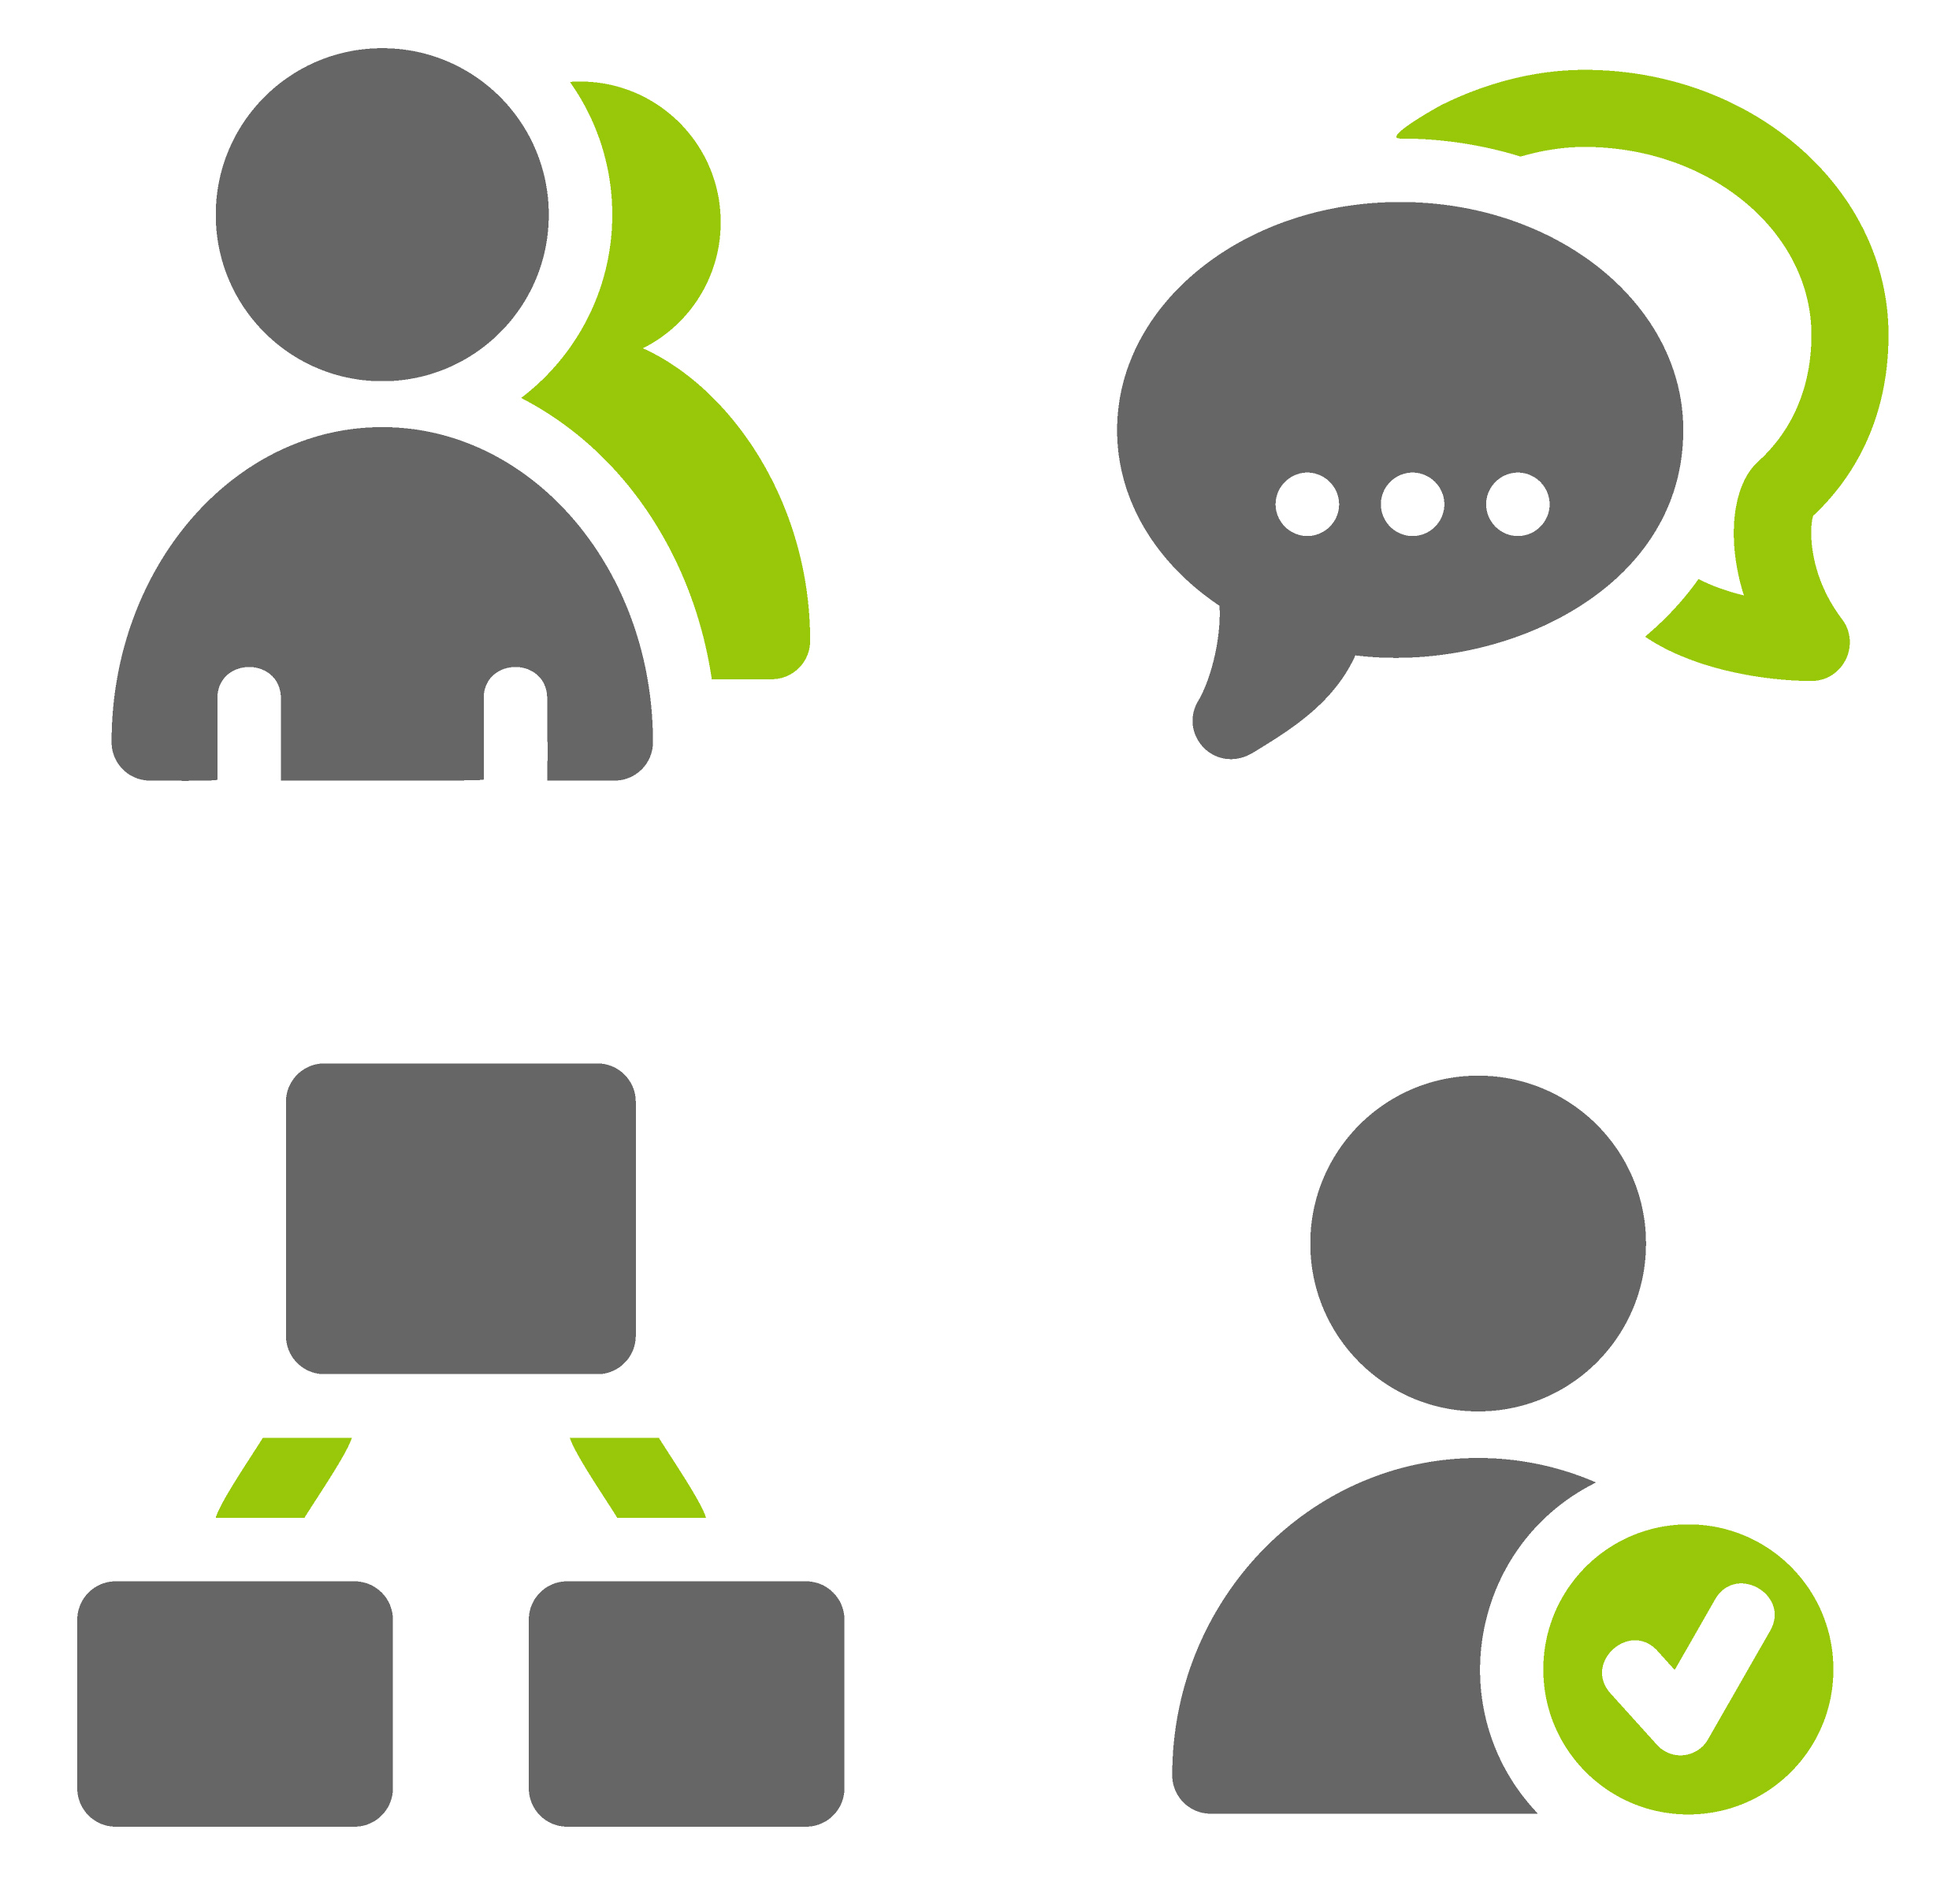 Free Png Customers - Customers Svg Free #35915 - Free Icons and PNG Backgrounds